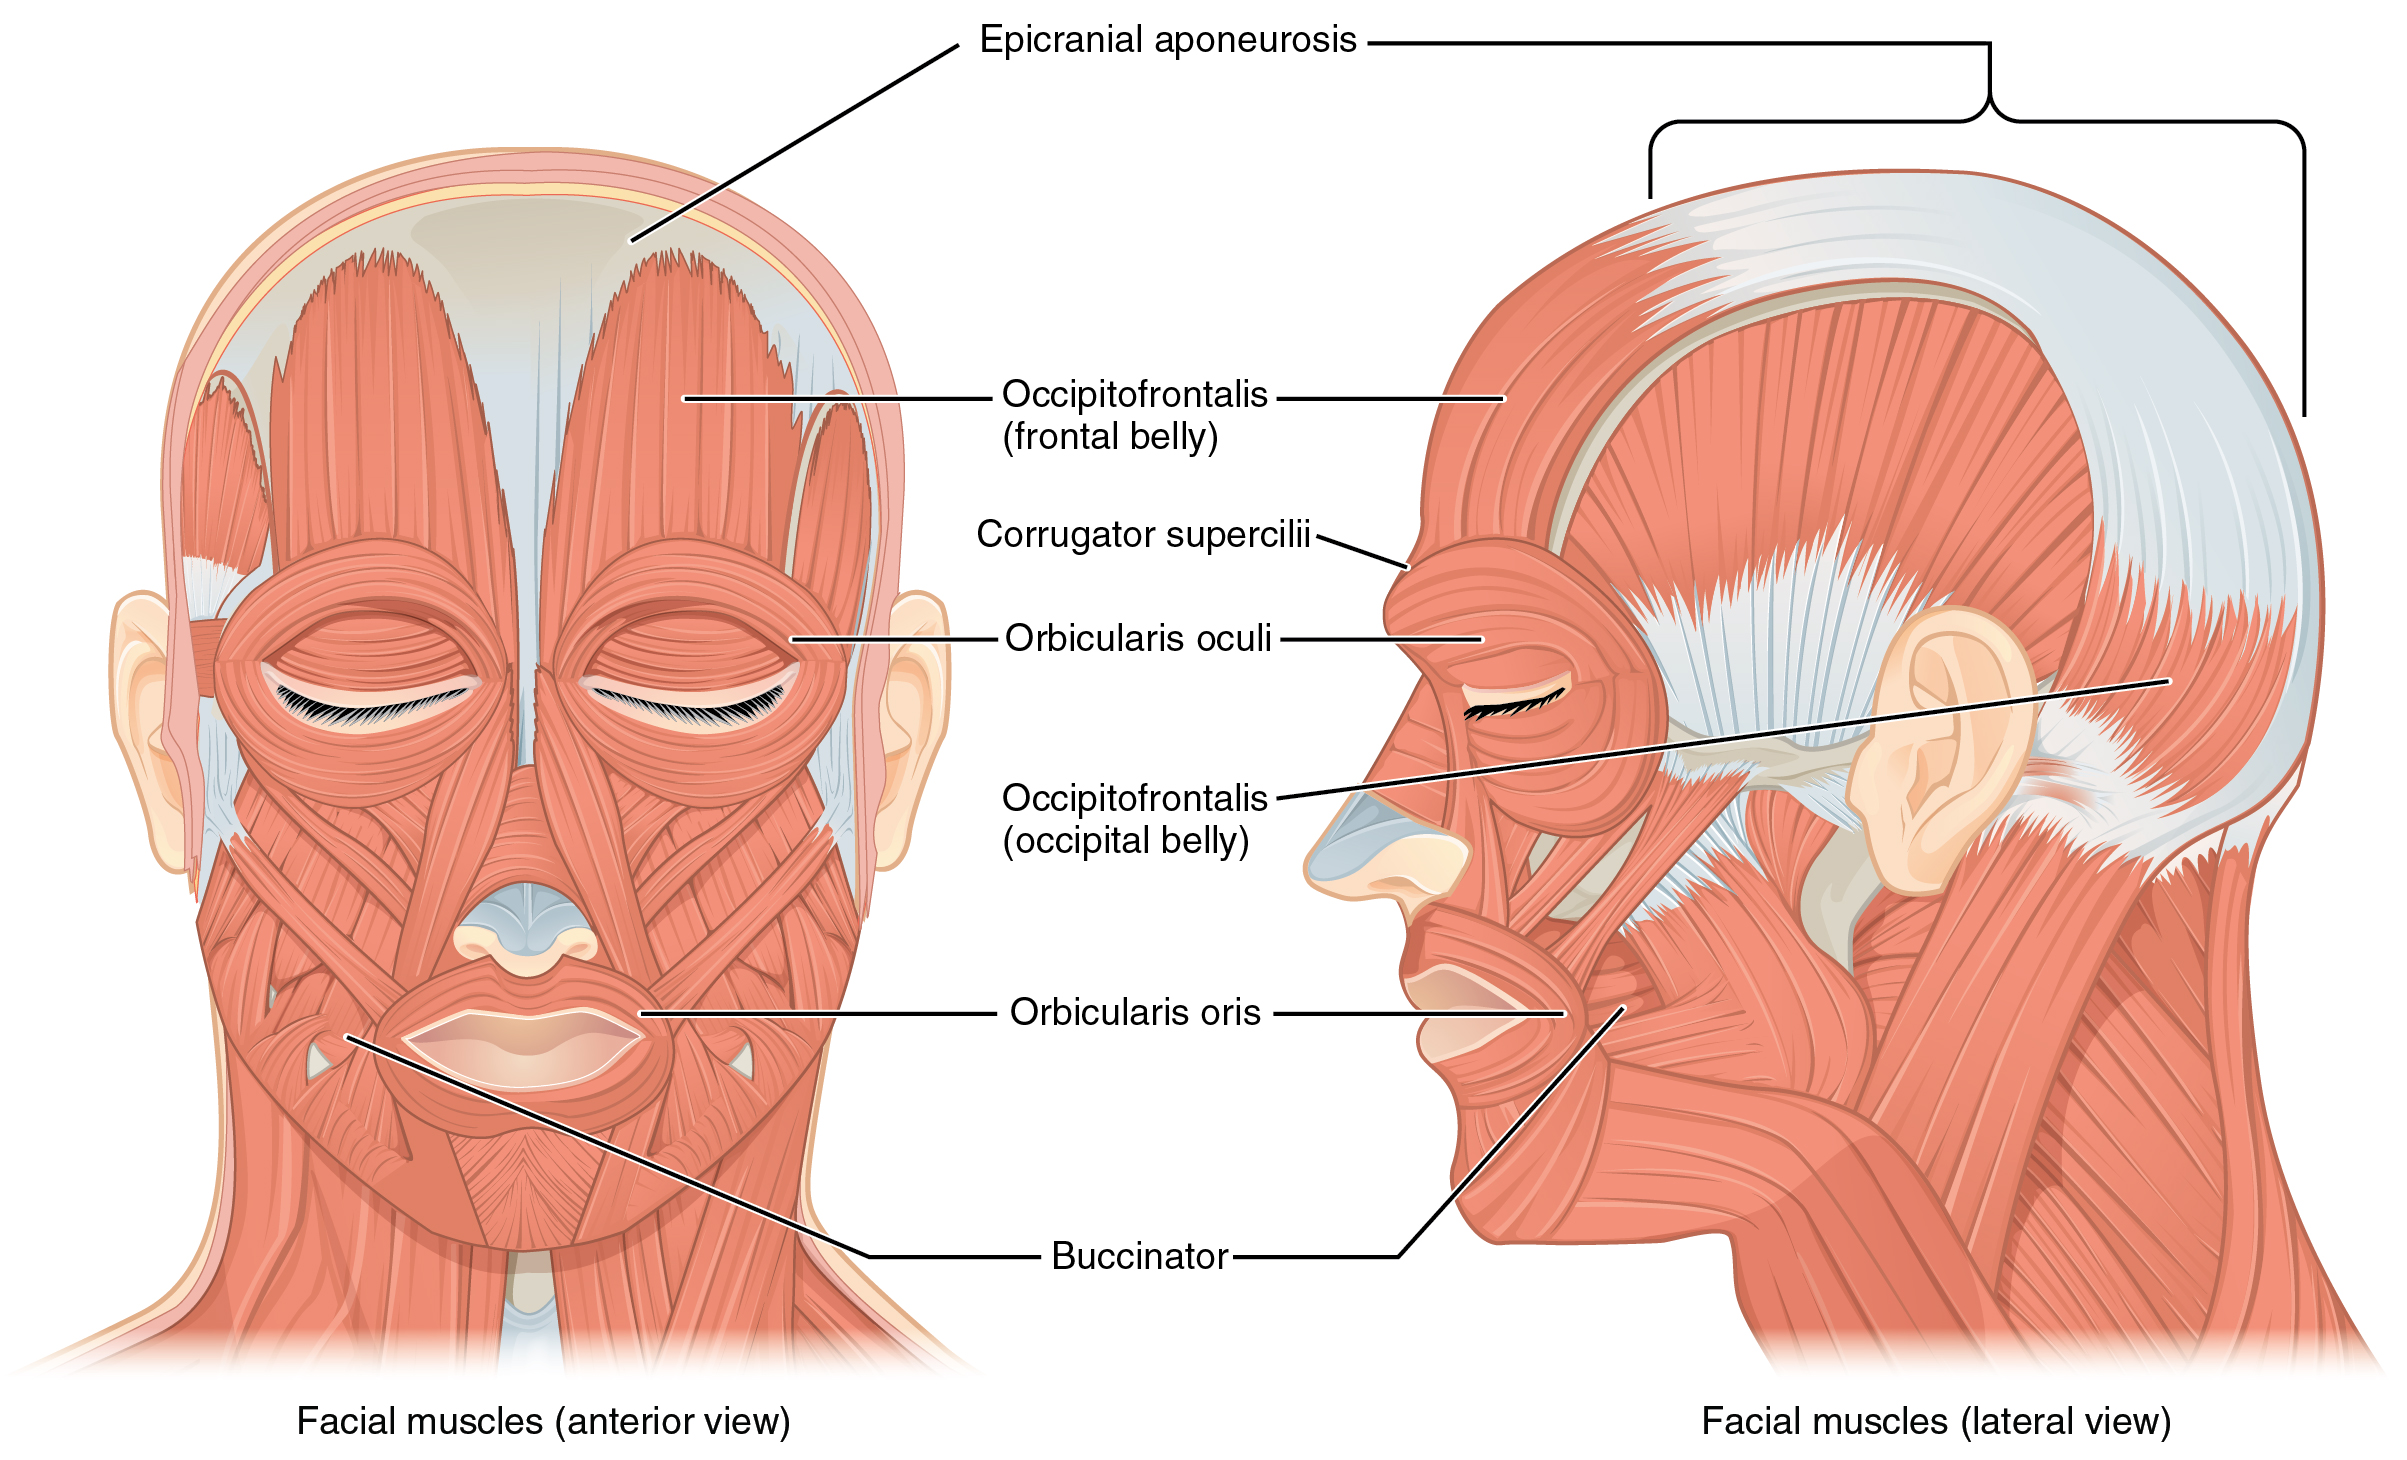 The Left Panel In This Figure Shows The Anterior View Of